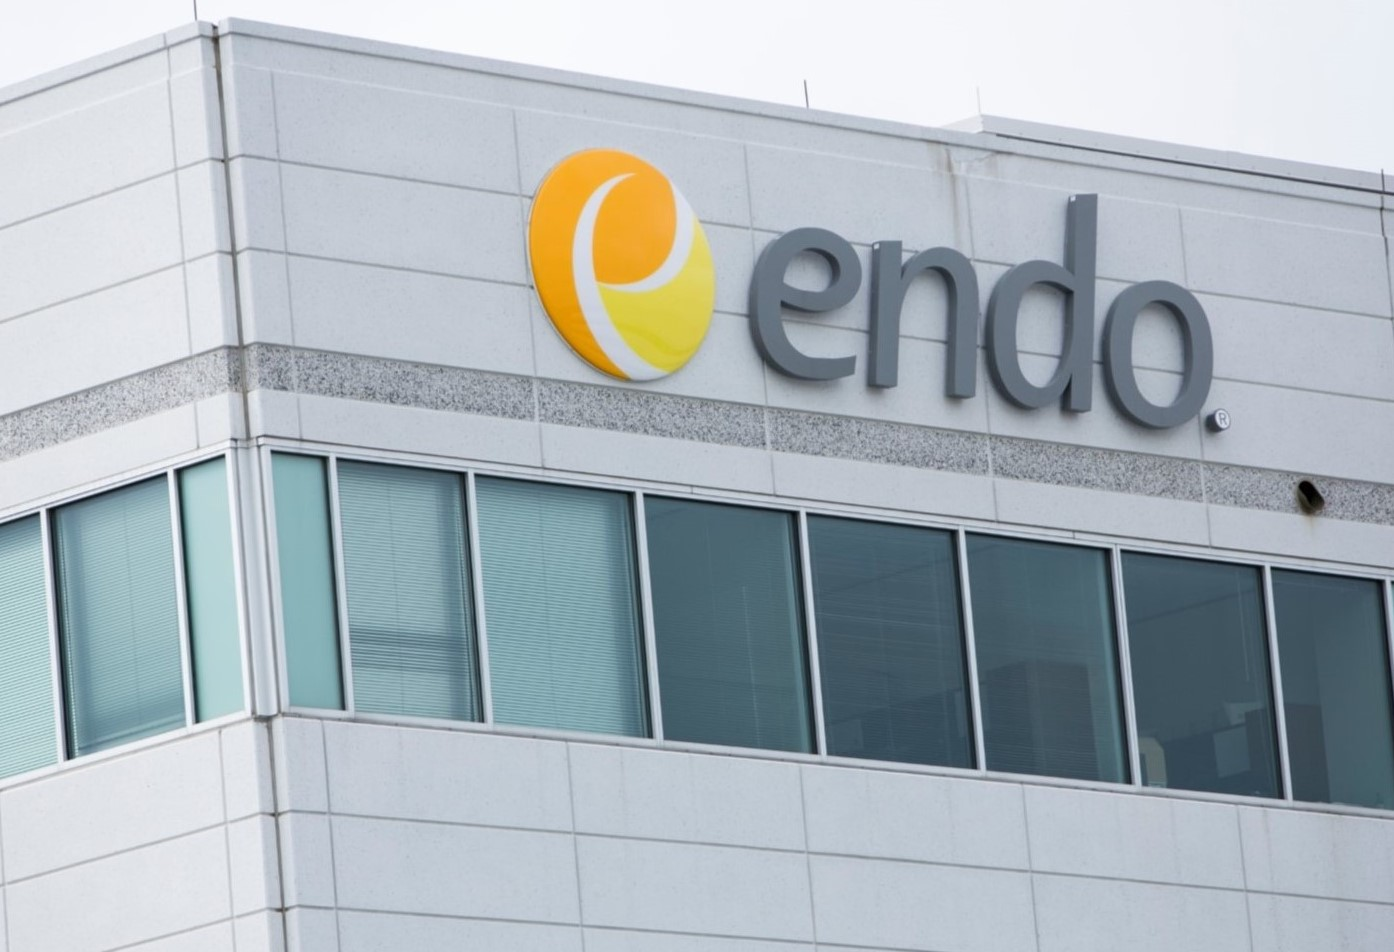 Malvern's Endo Reveals How It Manages Risks from Selling Opioids